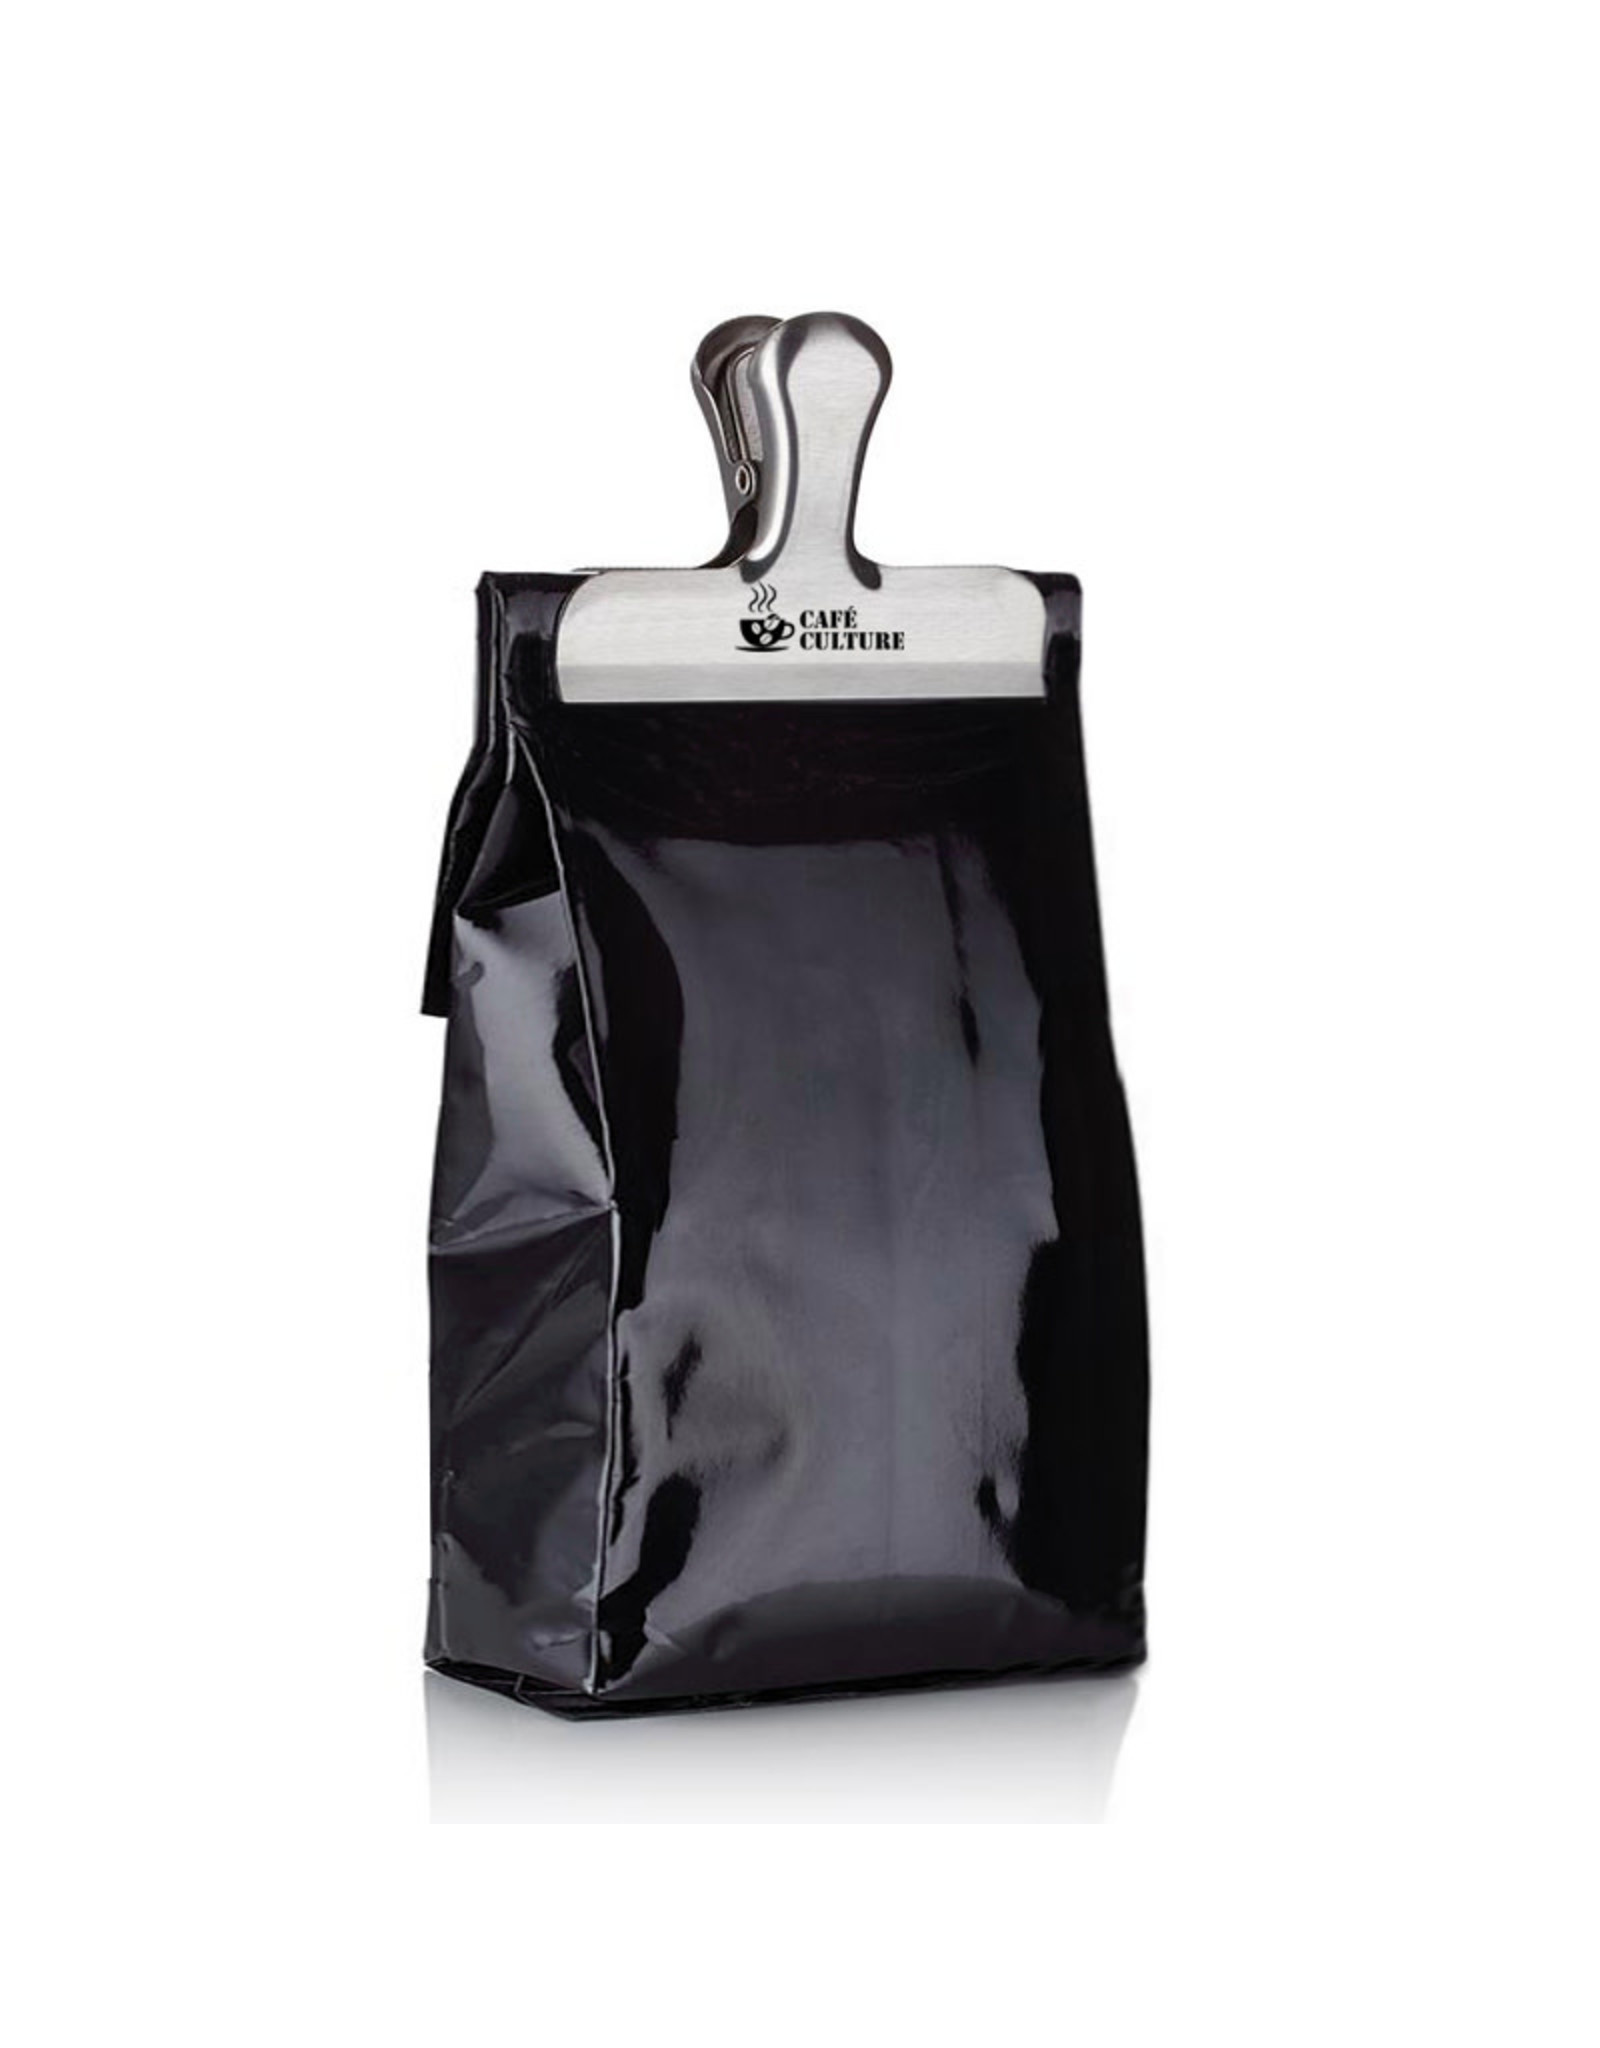 Café Culture Cafe Culture - Coffee Bag Clips - Stainless Steel